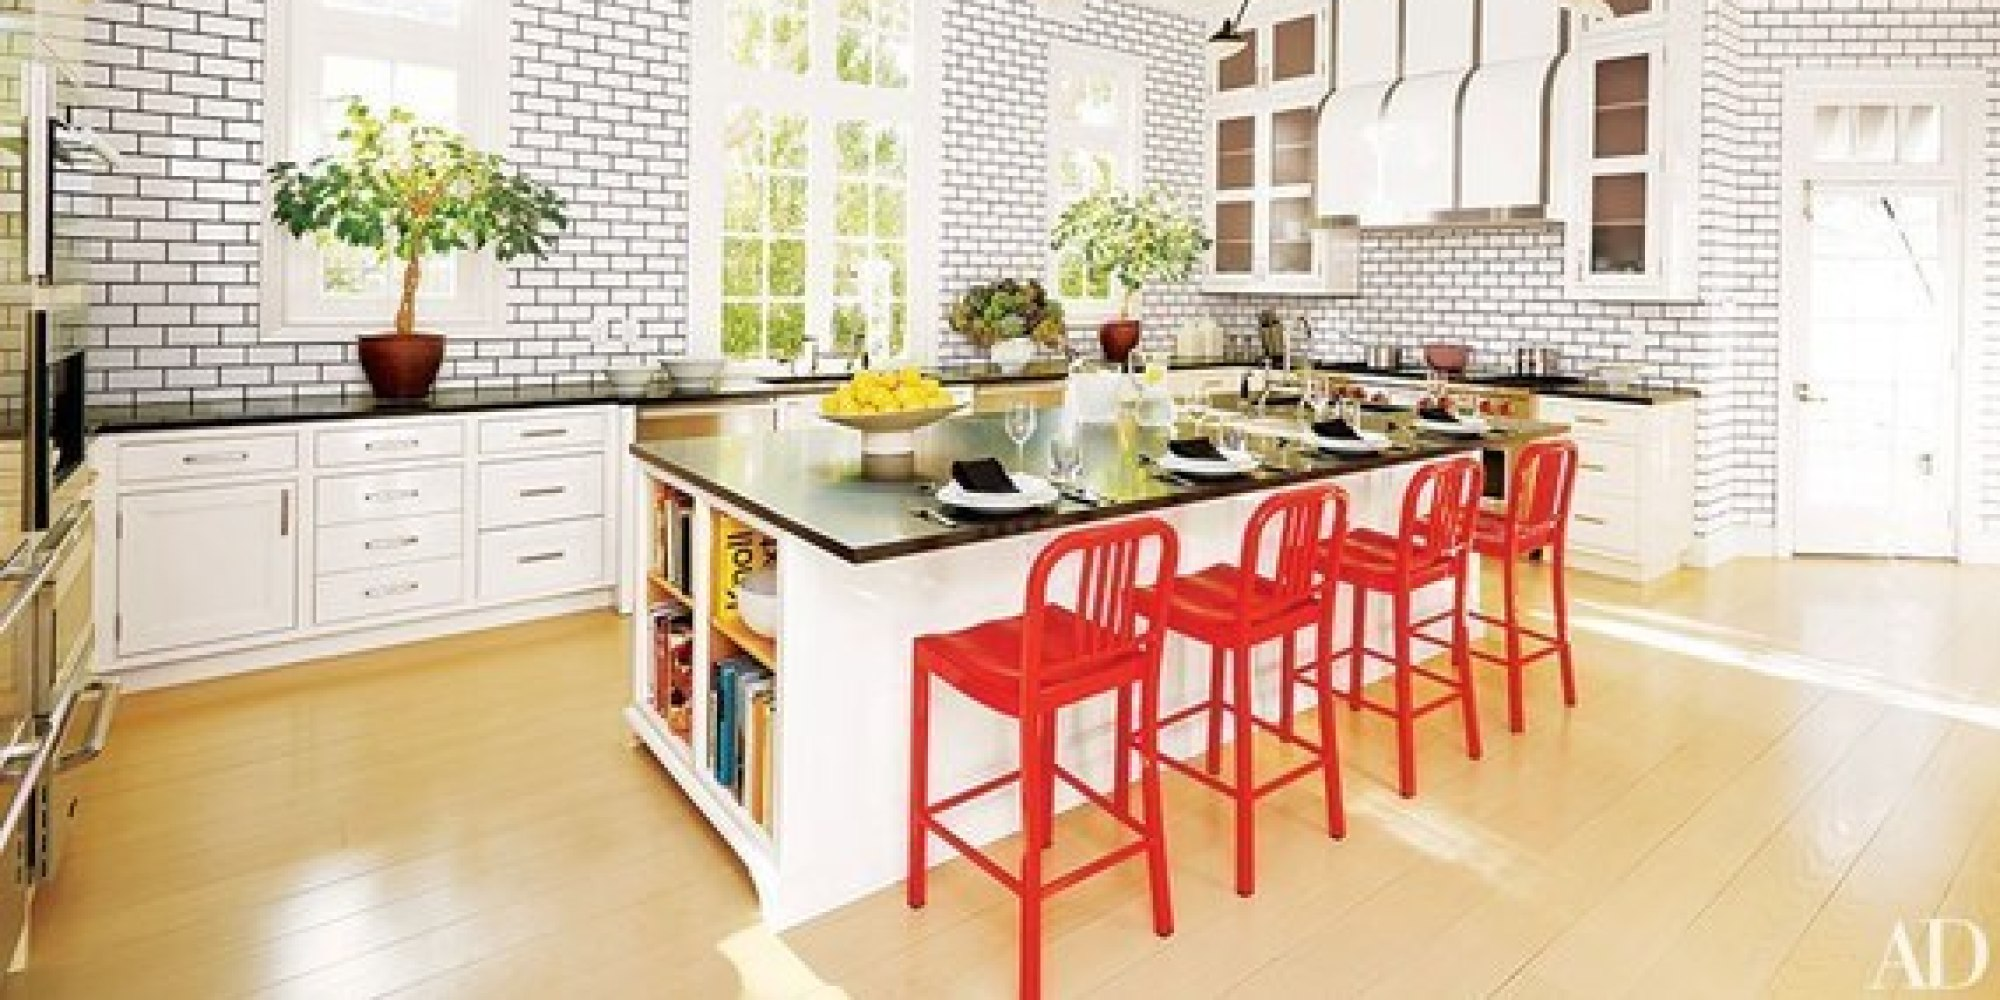 Wel e Spring With These 10 Colorful Kitchen Accents